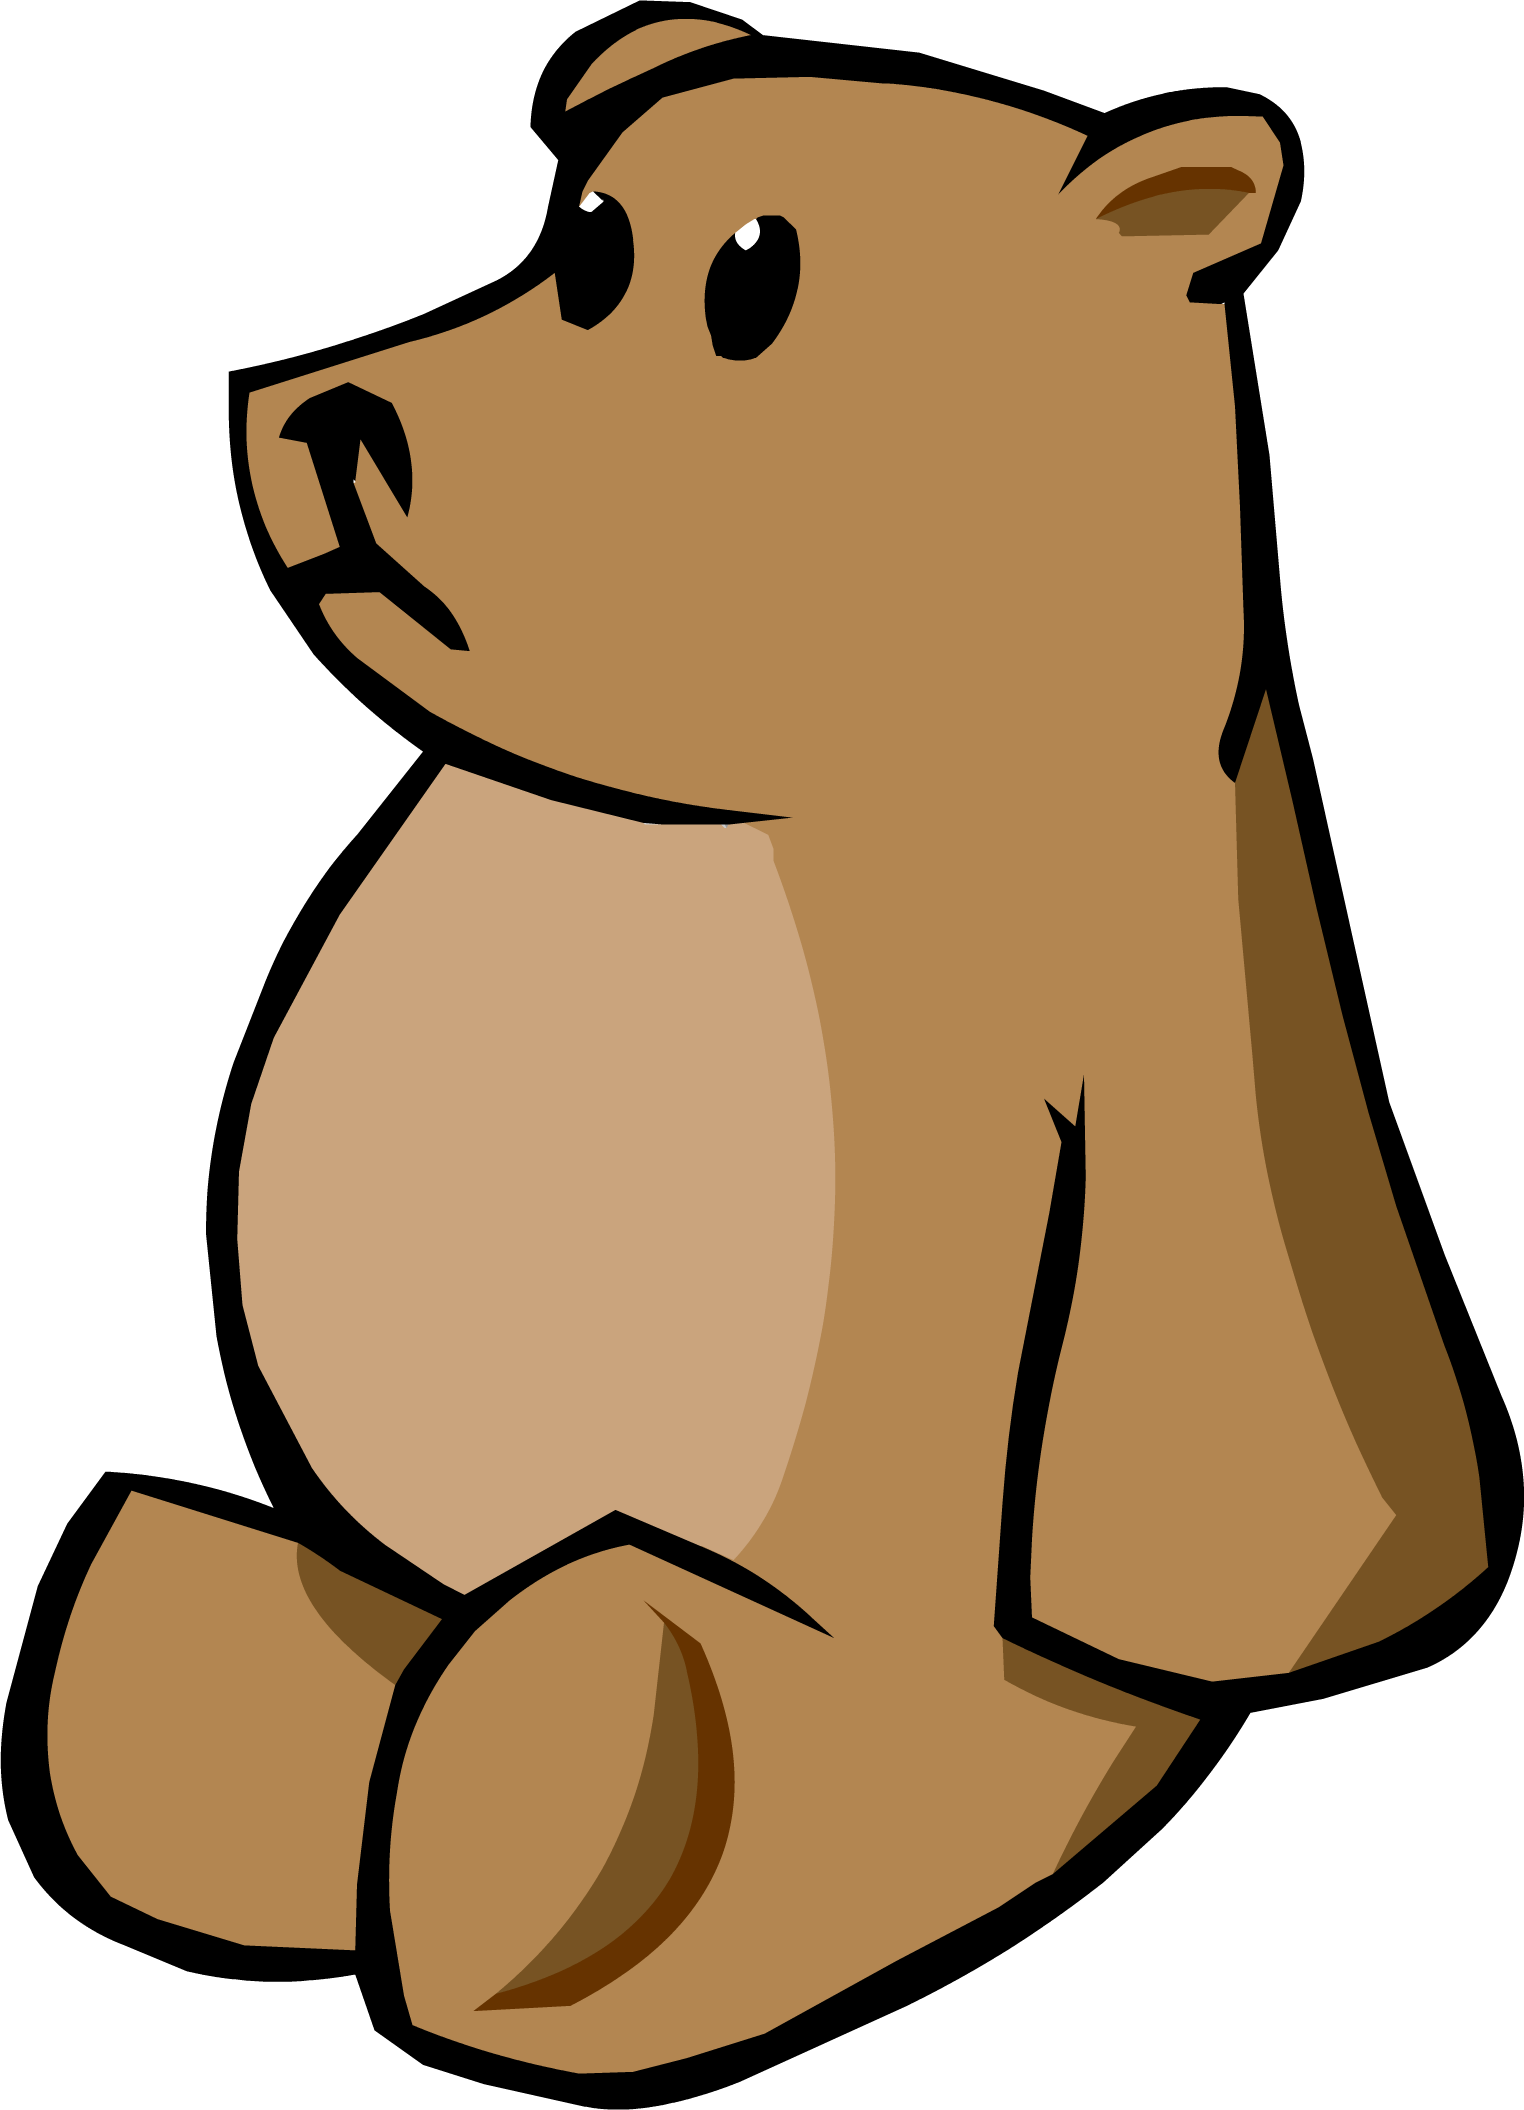 Clipart bear penguin. Image teddy png club